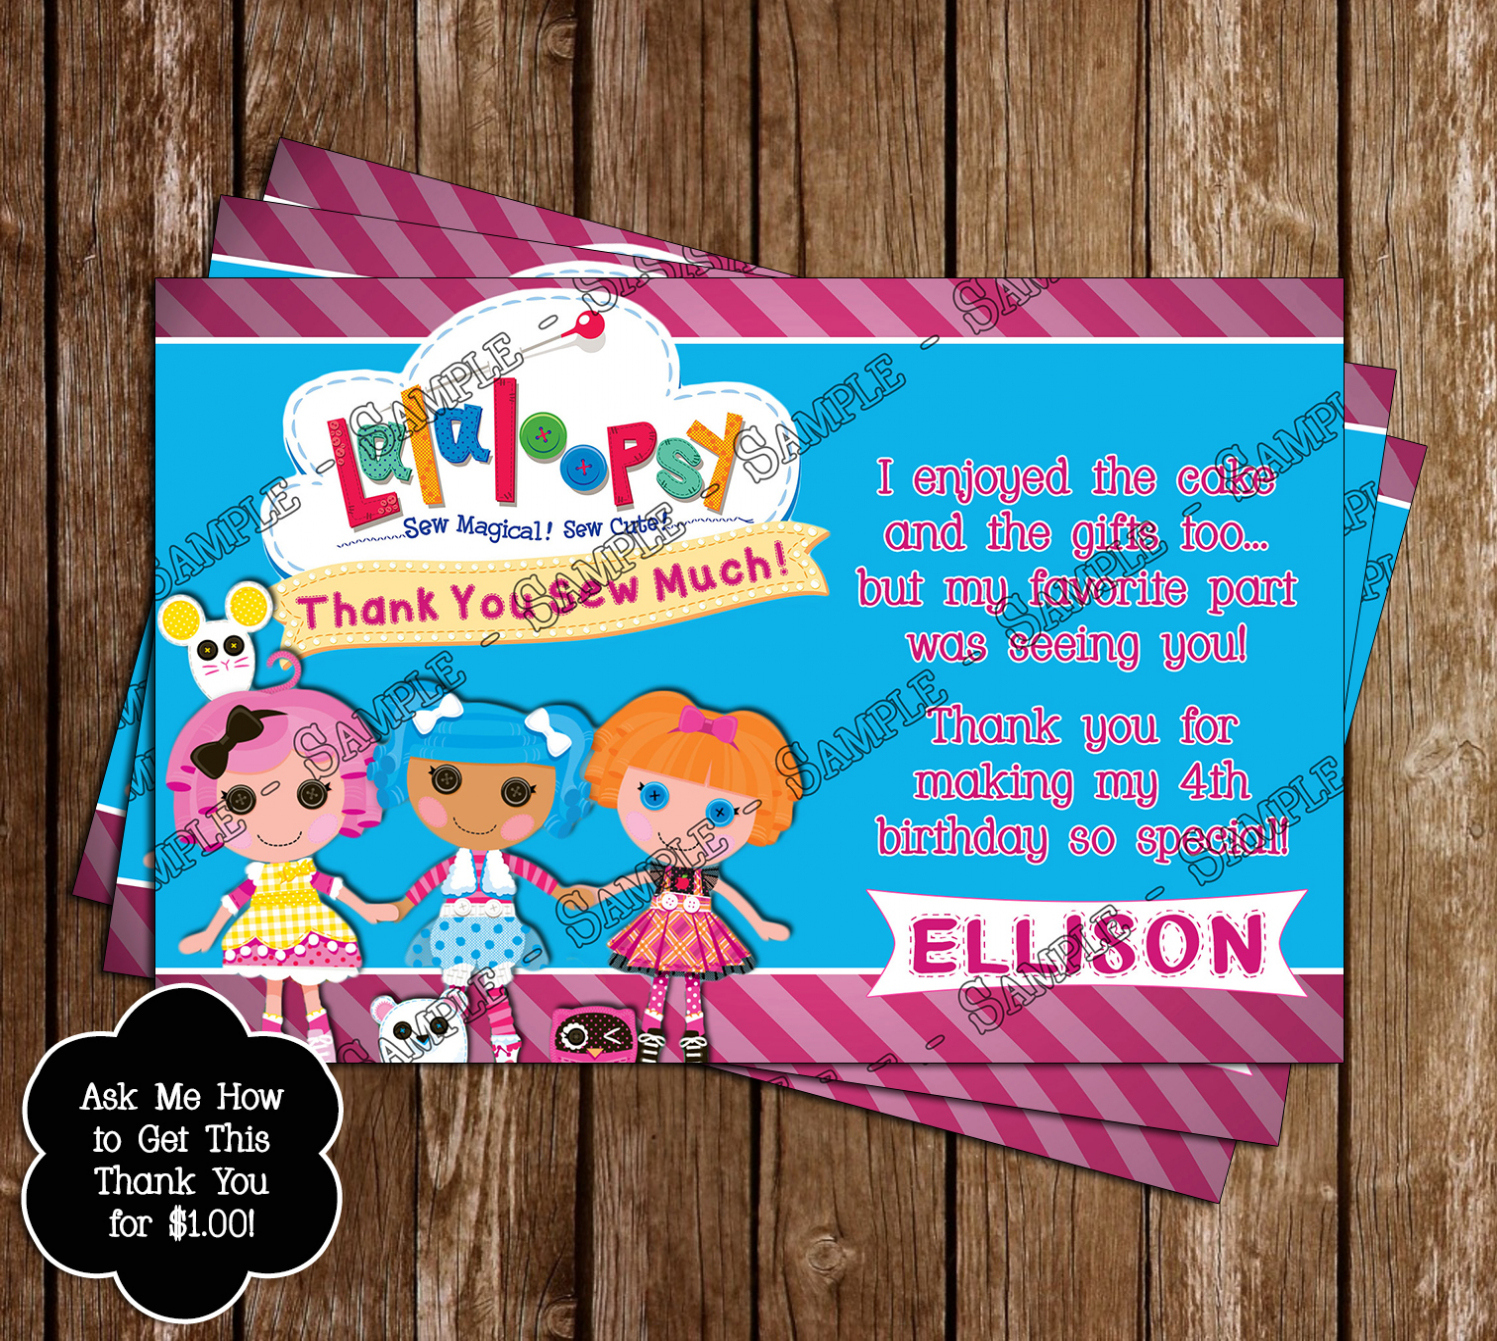 lalaloopsy birthday invitation wording ; surprise-80th-birthday-party-invitation-wording-birthday-lalaloopsy-invitation-lalaloopsy-birthday-party-invite